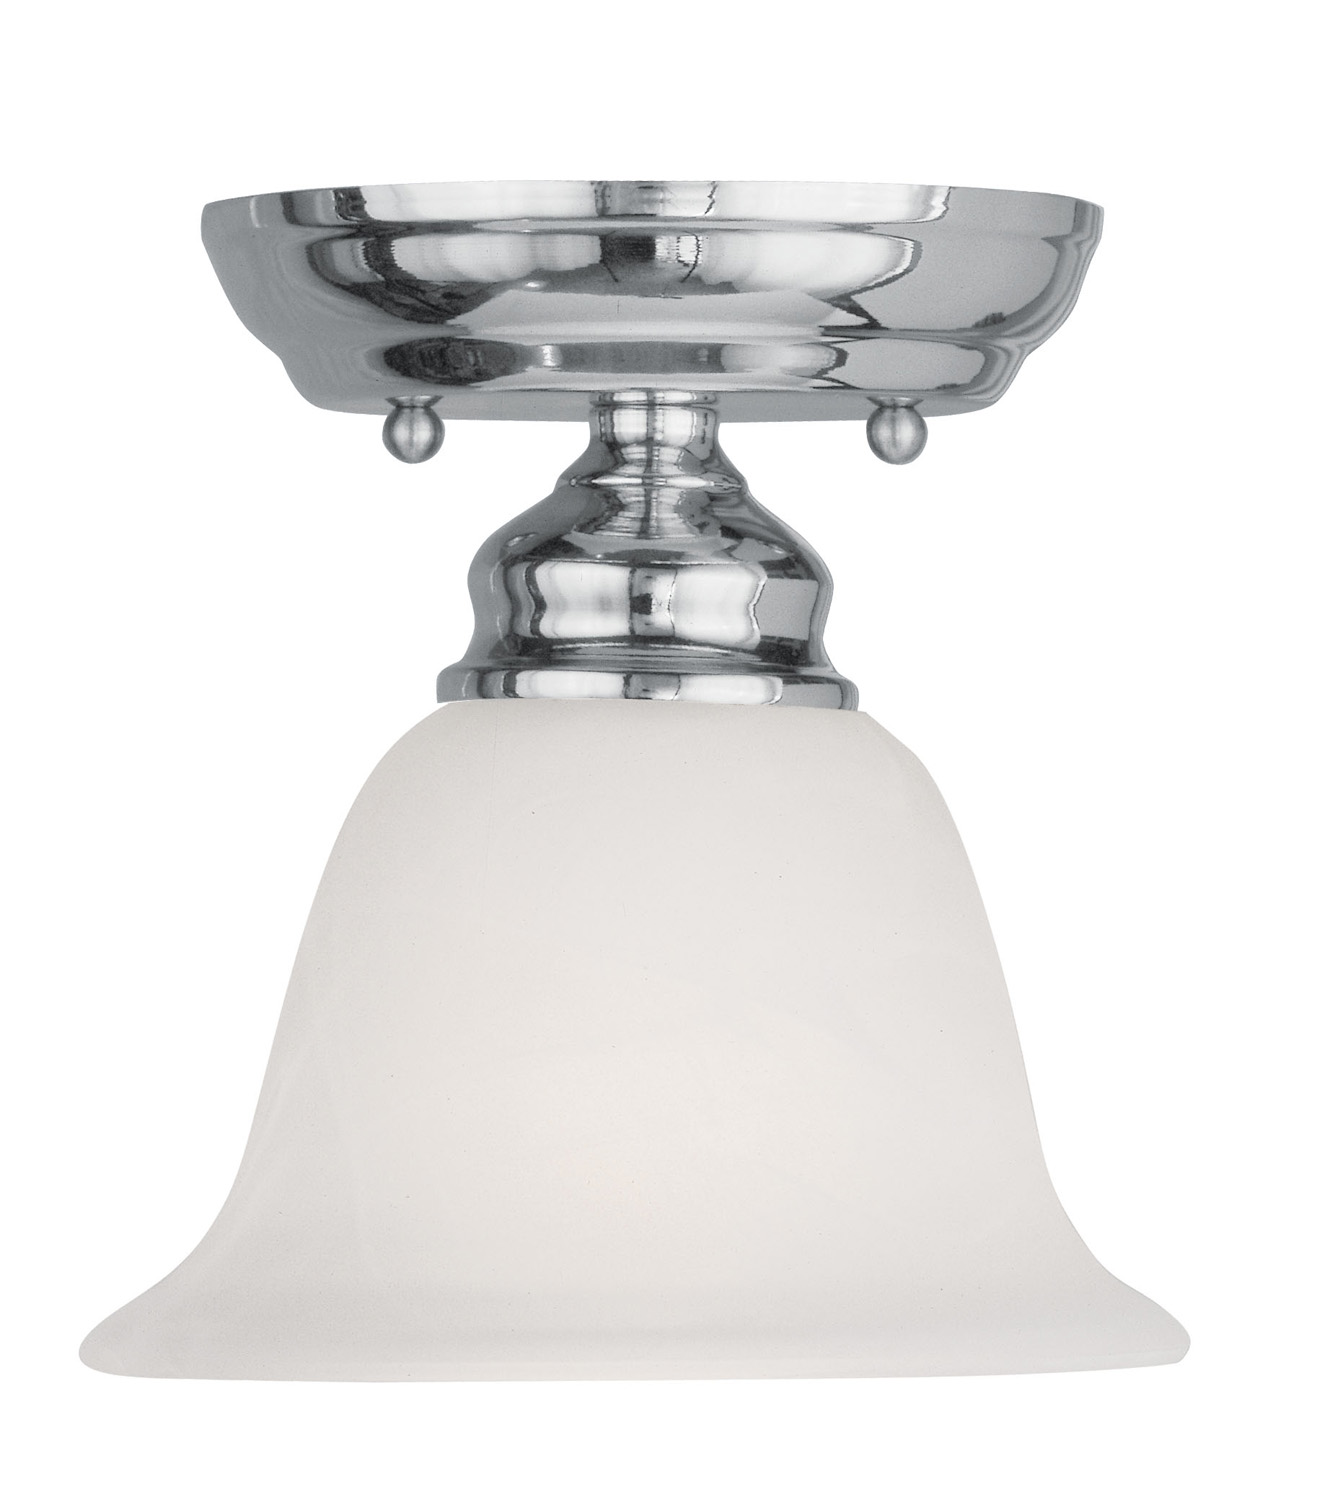 Ceiling | Mount | Light | One